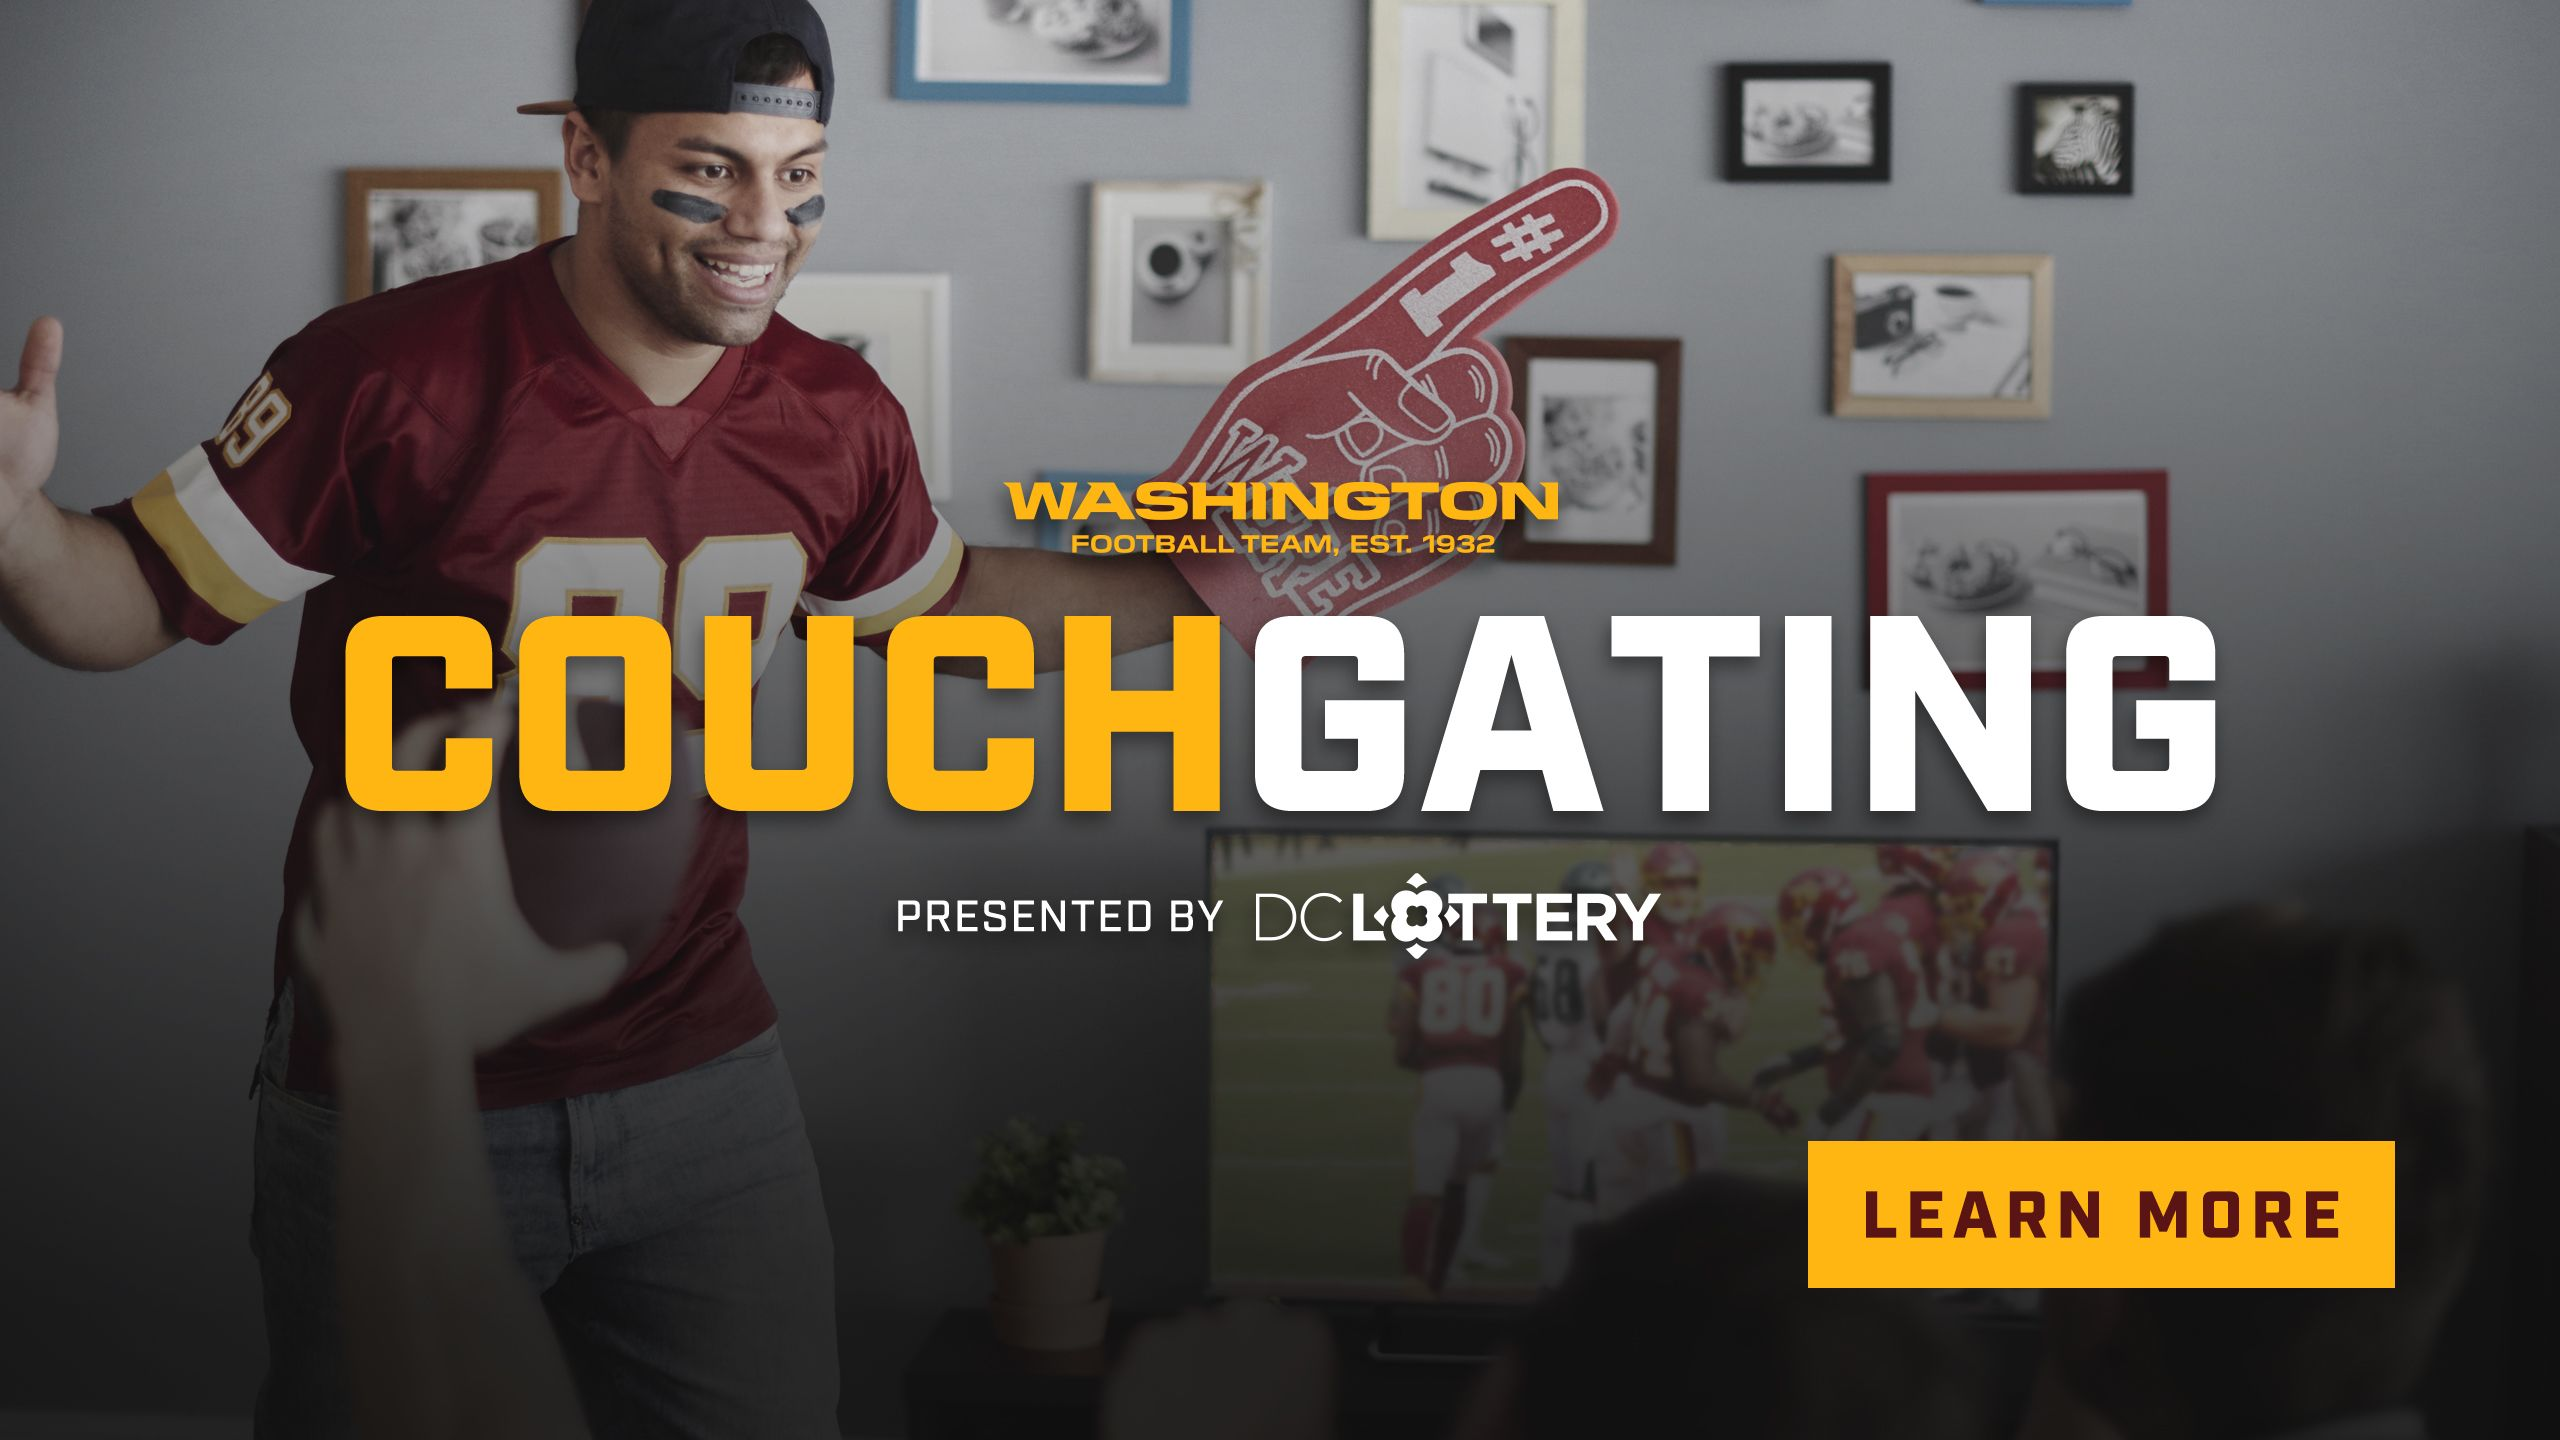 Couchgating_DCLottery_HomepageRotator+CTA